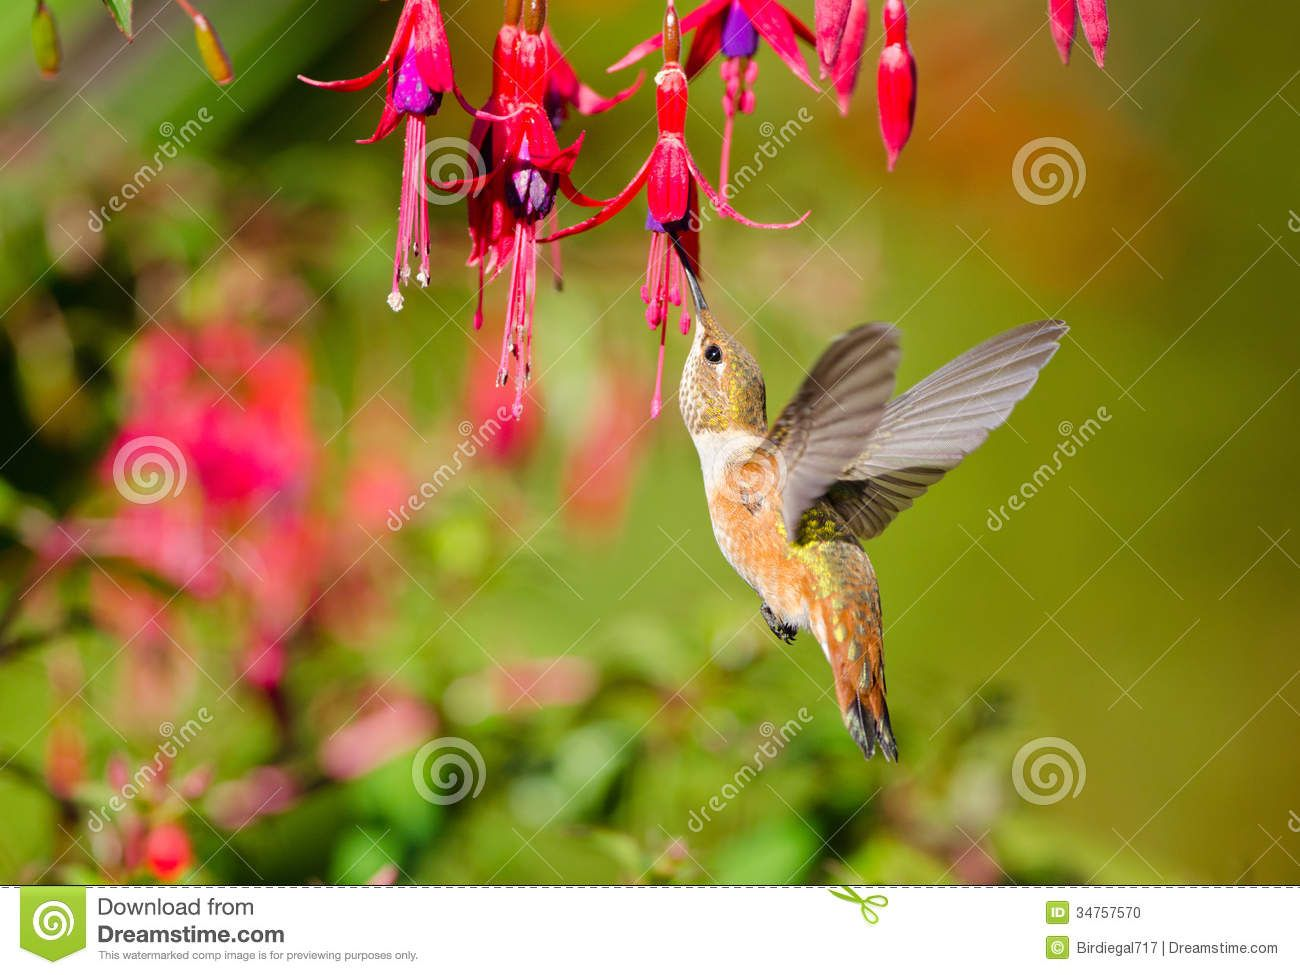 Rufous Hummingbird Feeding On Hardy Fuchsia Flower Stock Photo Fuchsia Flowers How To Attract Hummingbirds Hummingbird Garden